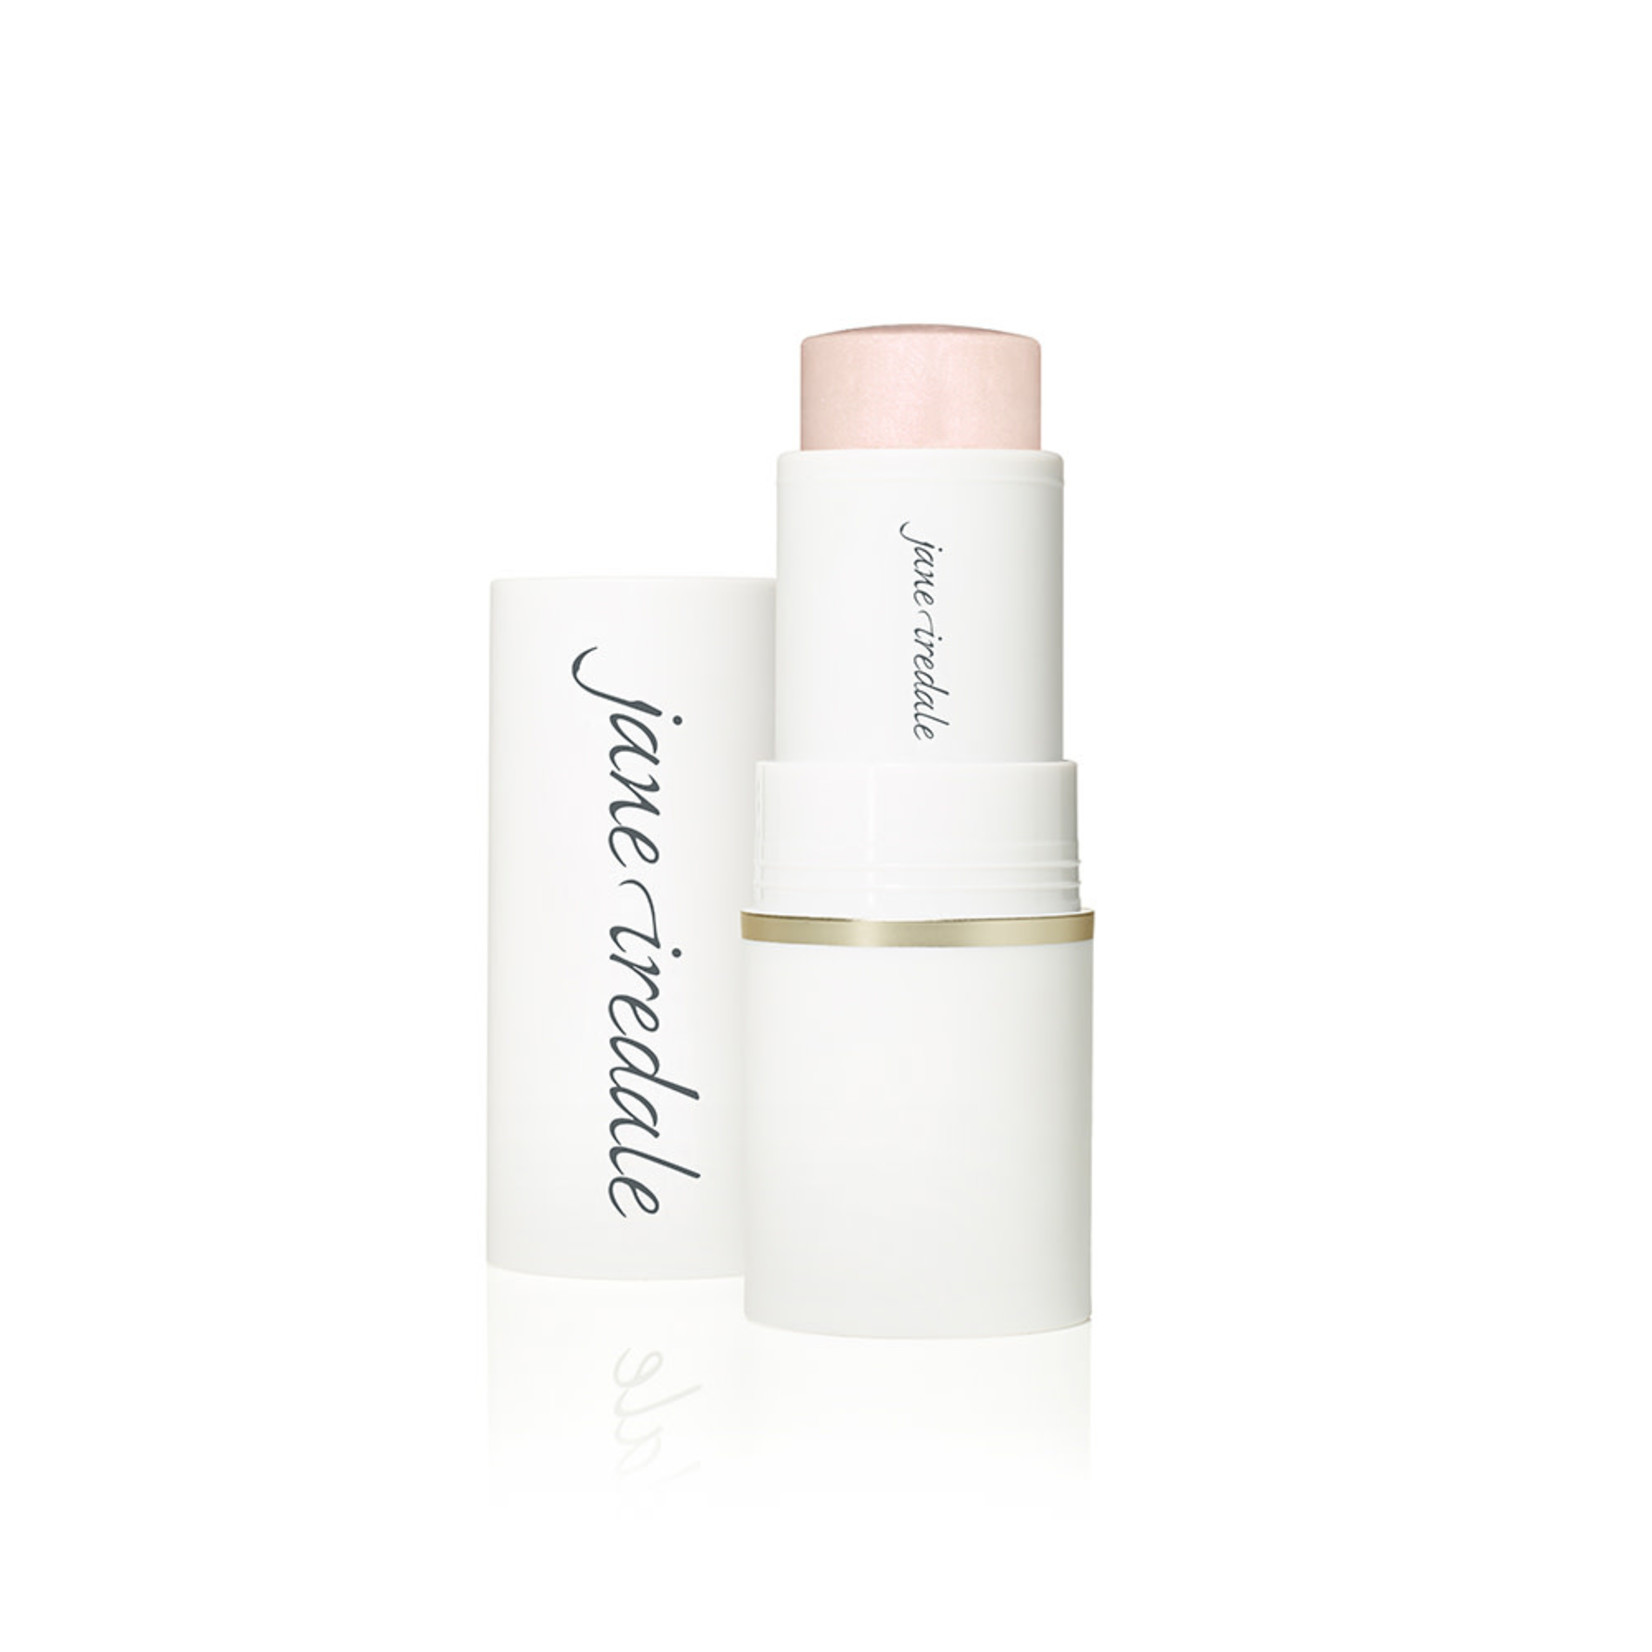 jane iredale Glow Time highlighter stick - Cosmos